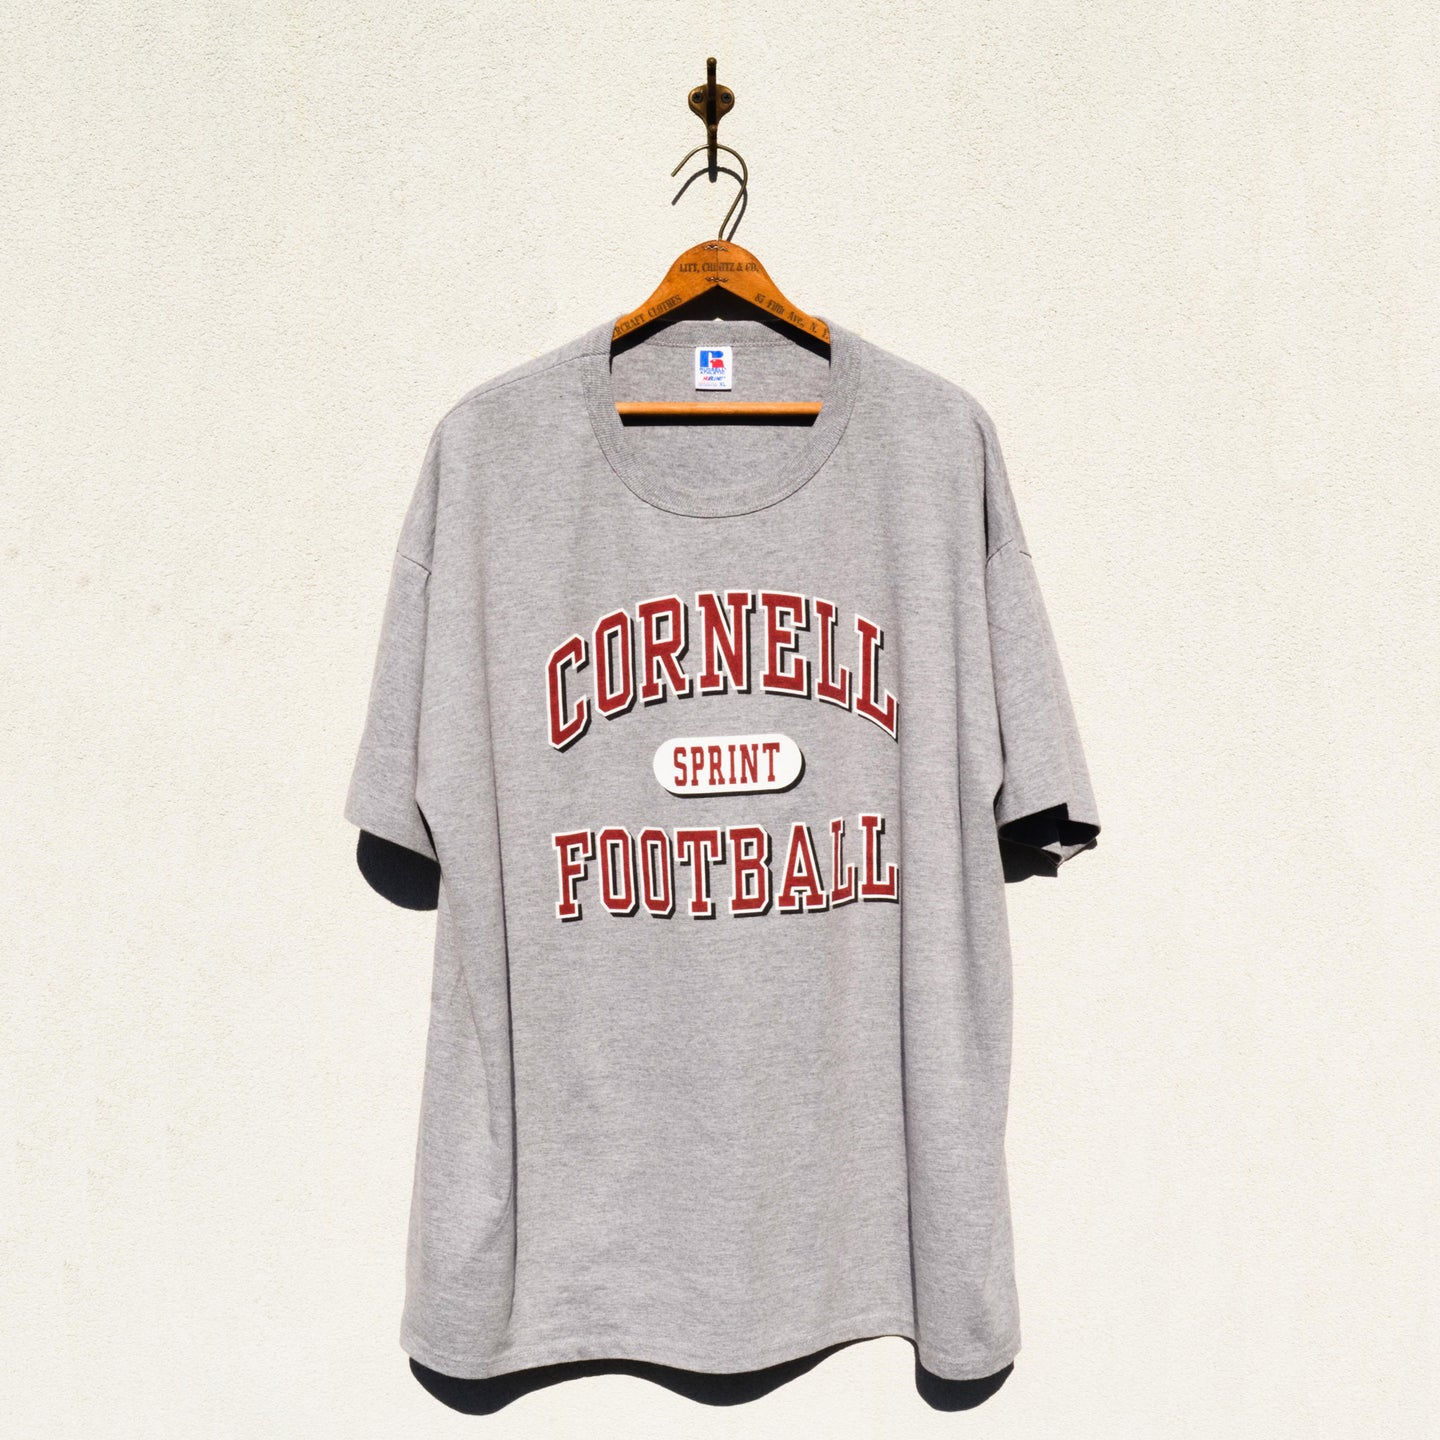 Russel Athletic - Cornell University Football Tee shirt